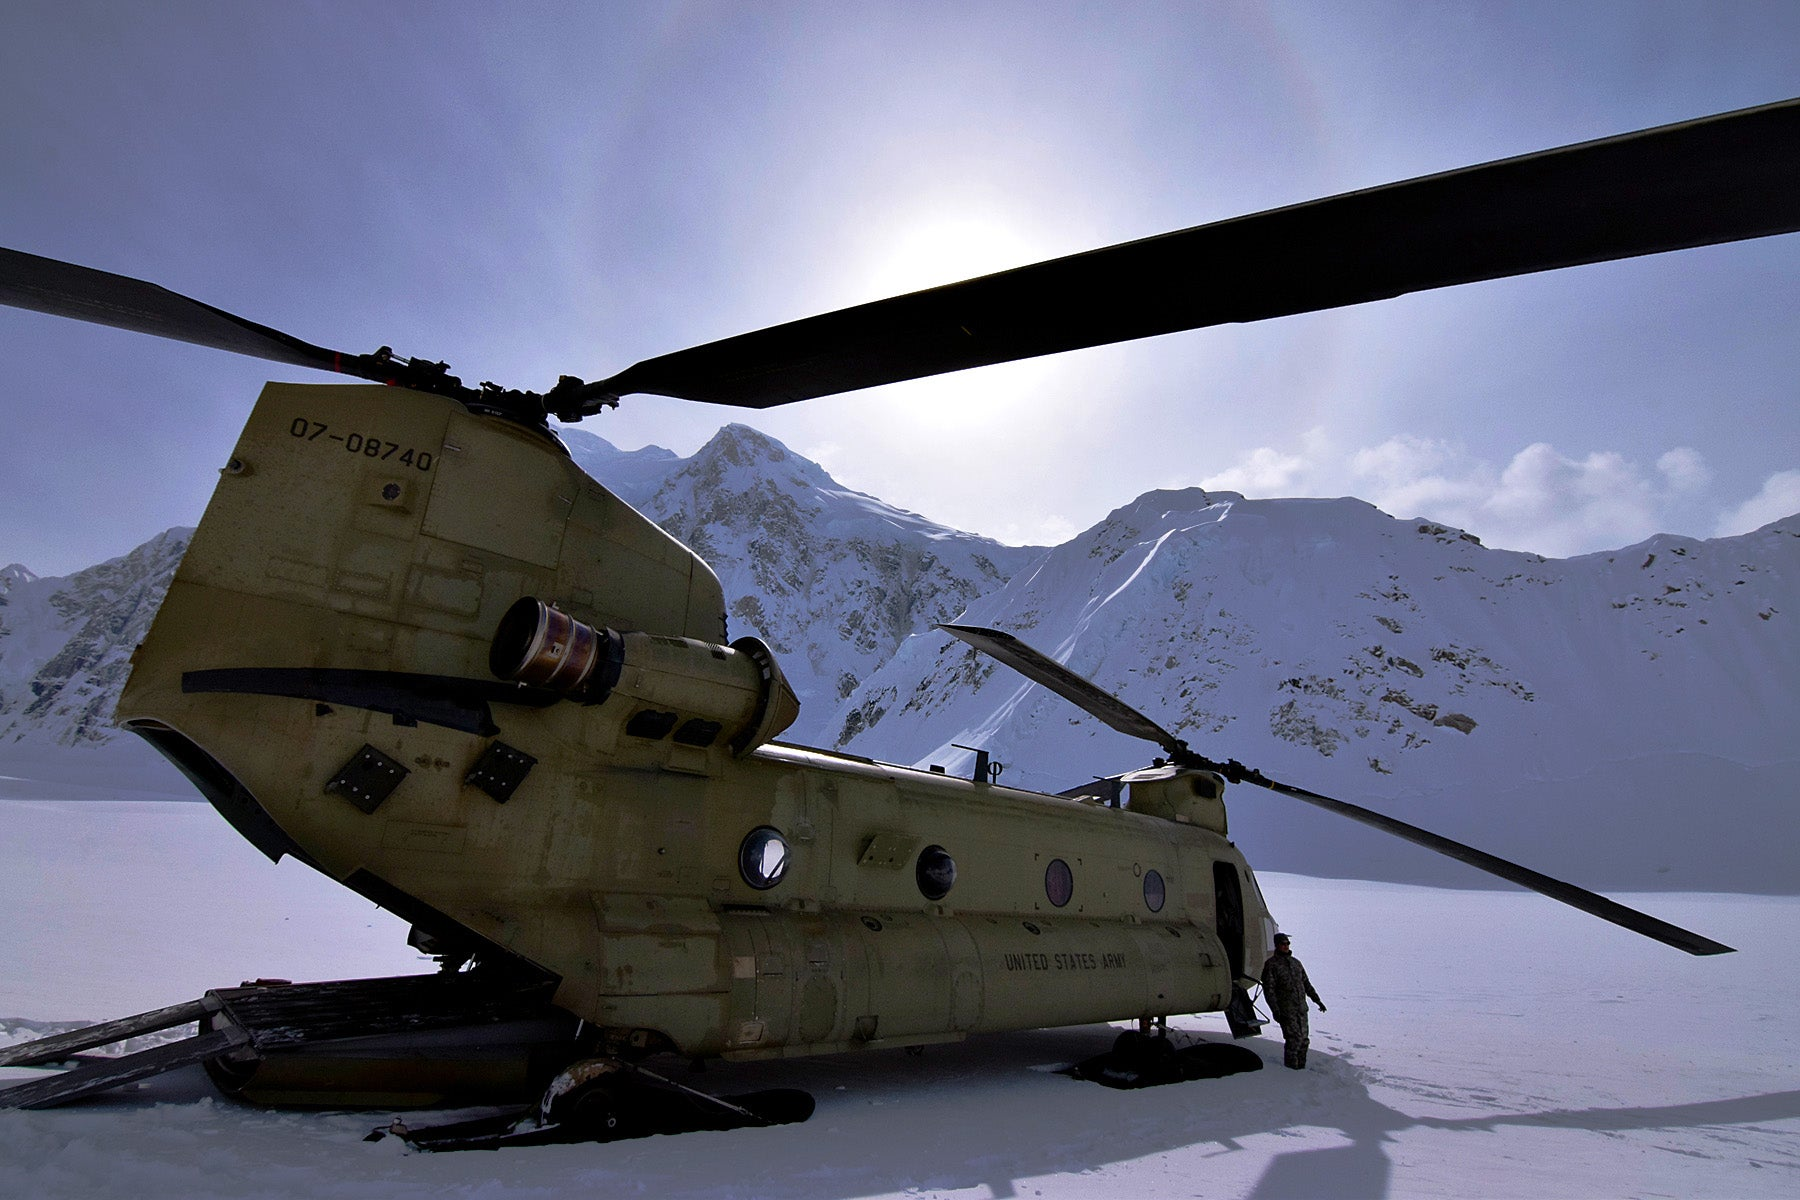 This Is a Ridiculously Perfect Shot of a Chinook Helicopter